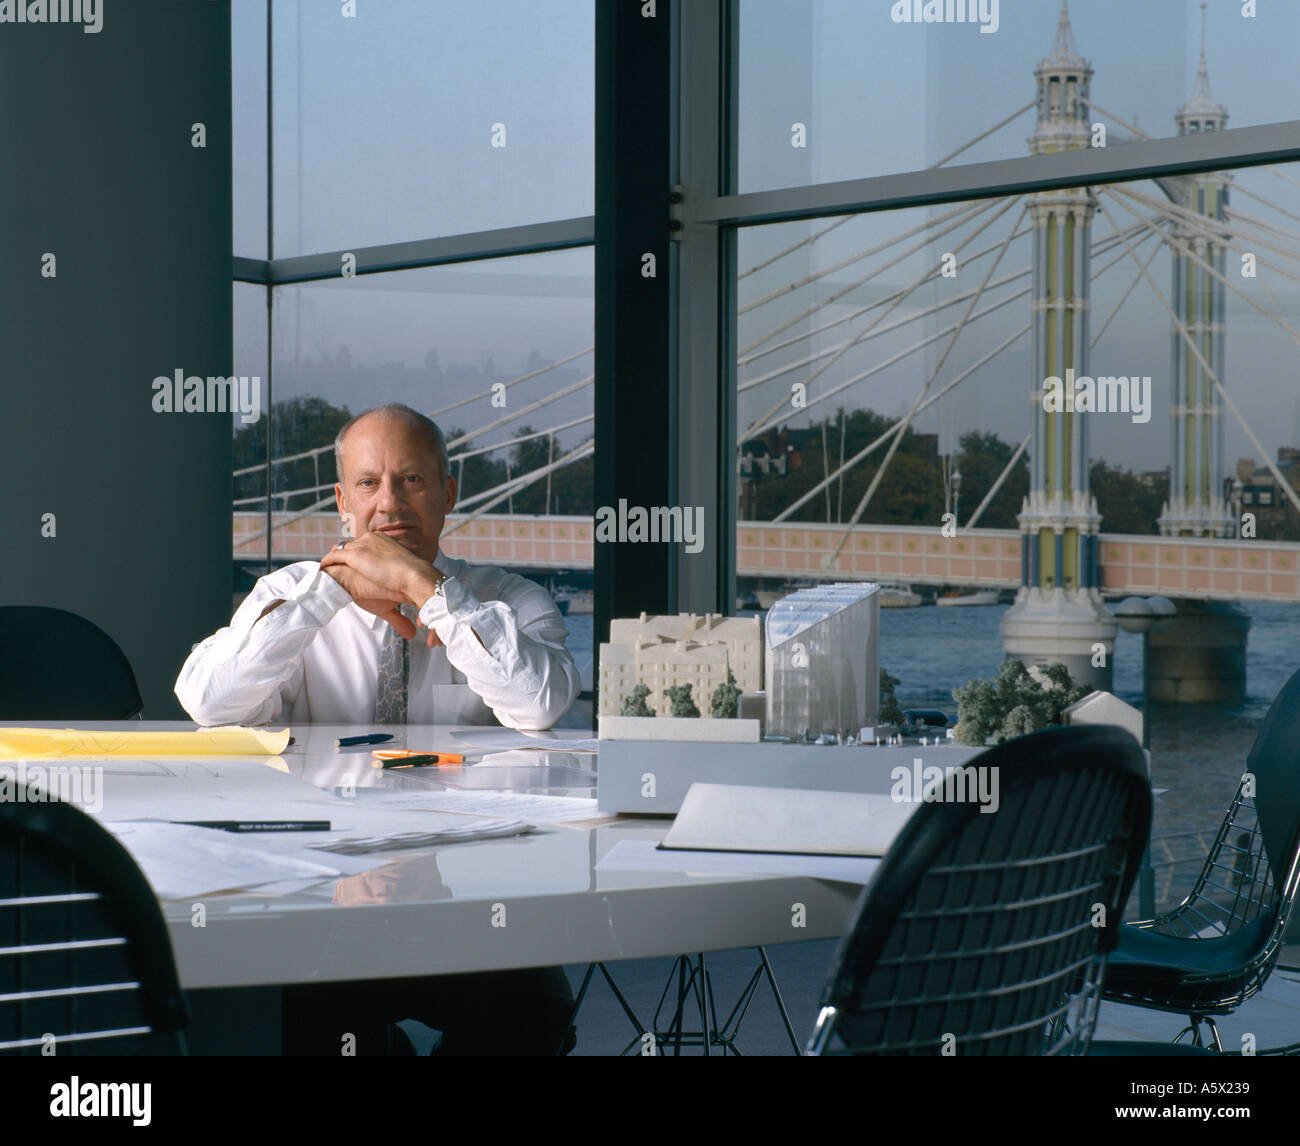 Sir Norman Foster at his desk. Portraits of architects and designers. - Stock Image